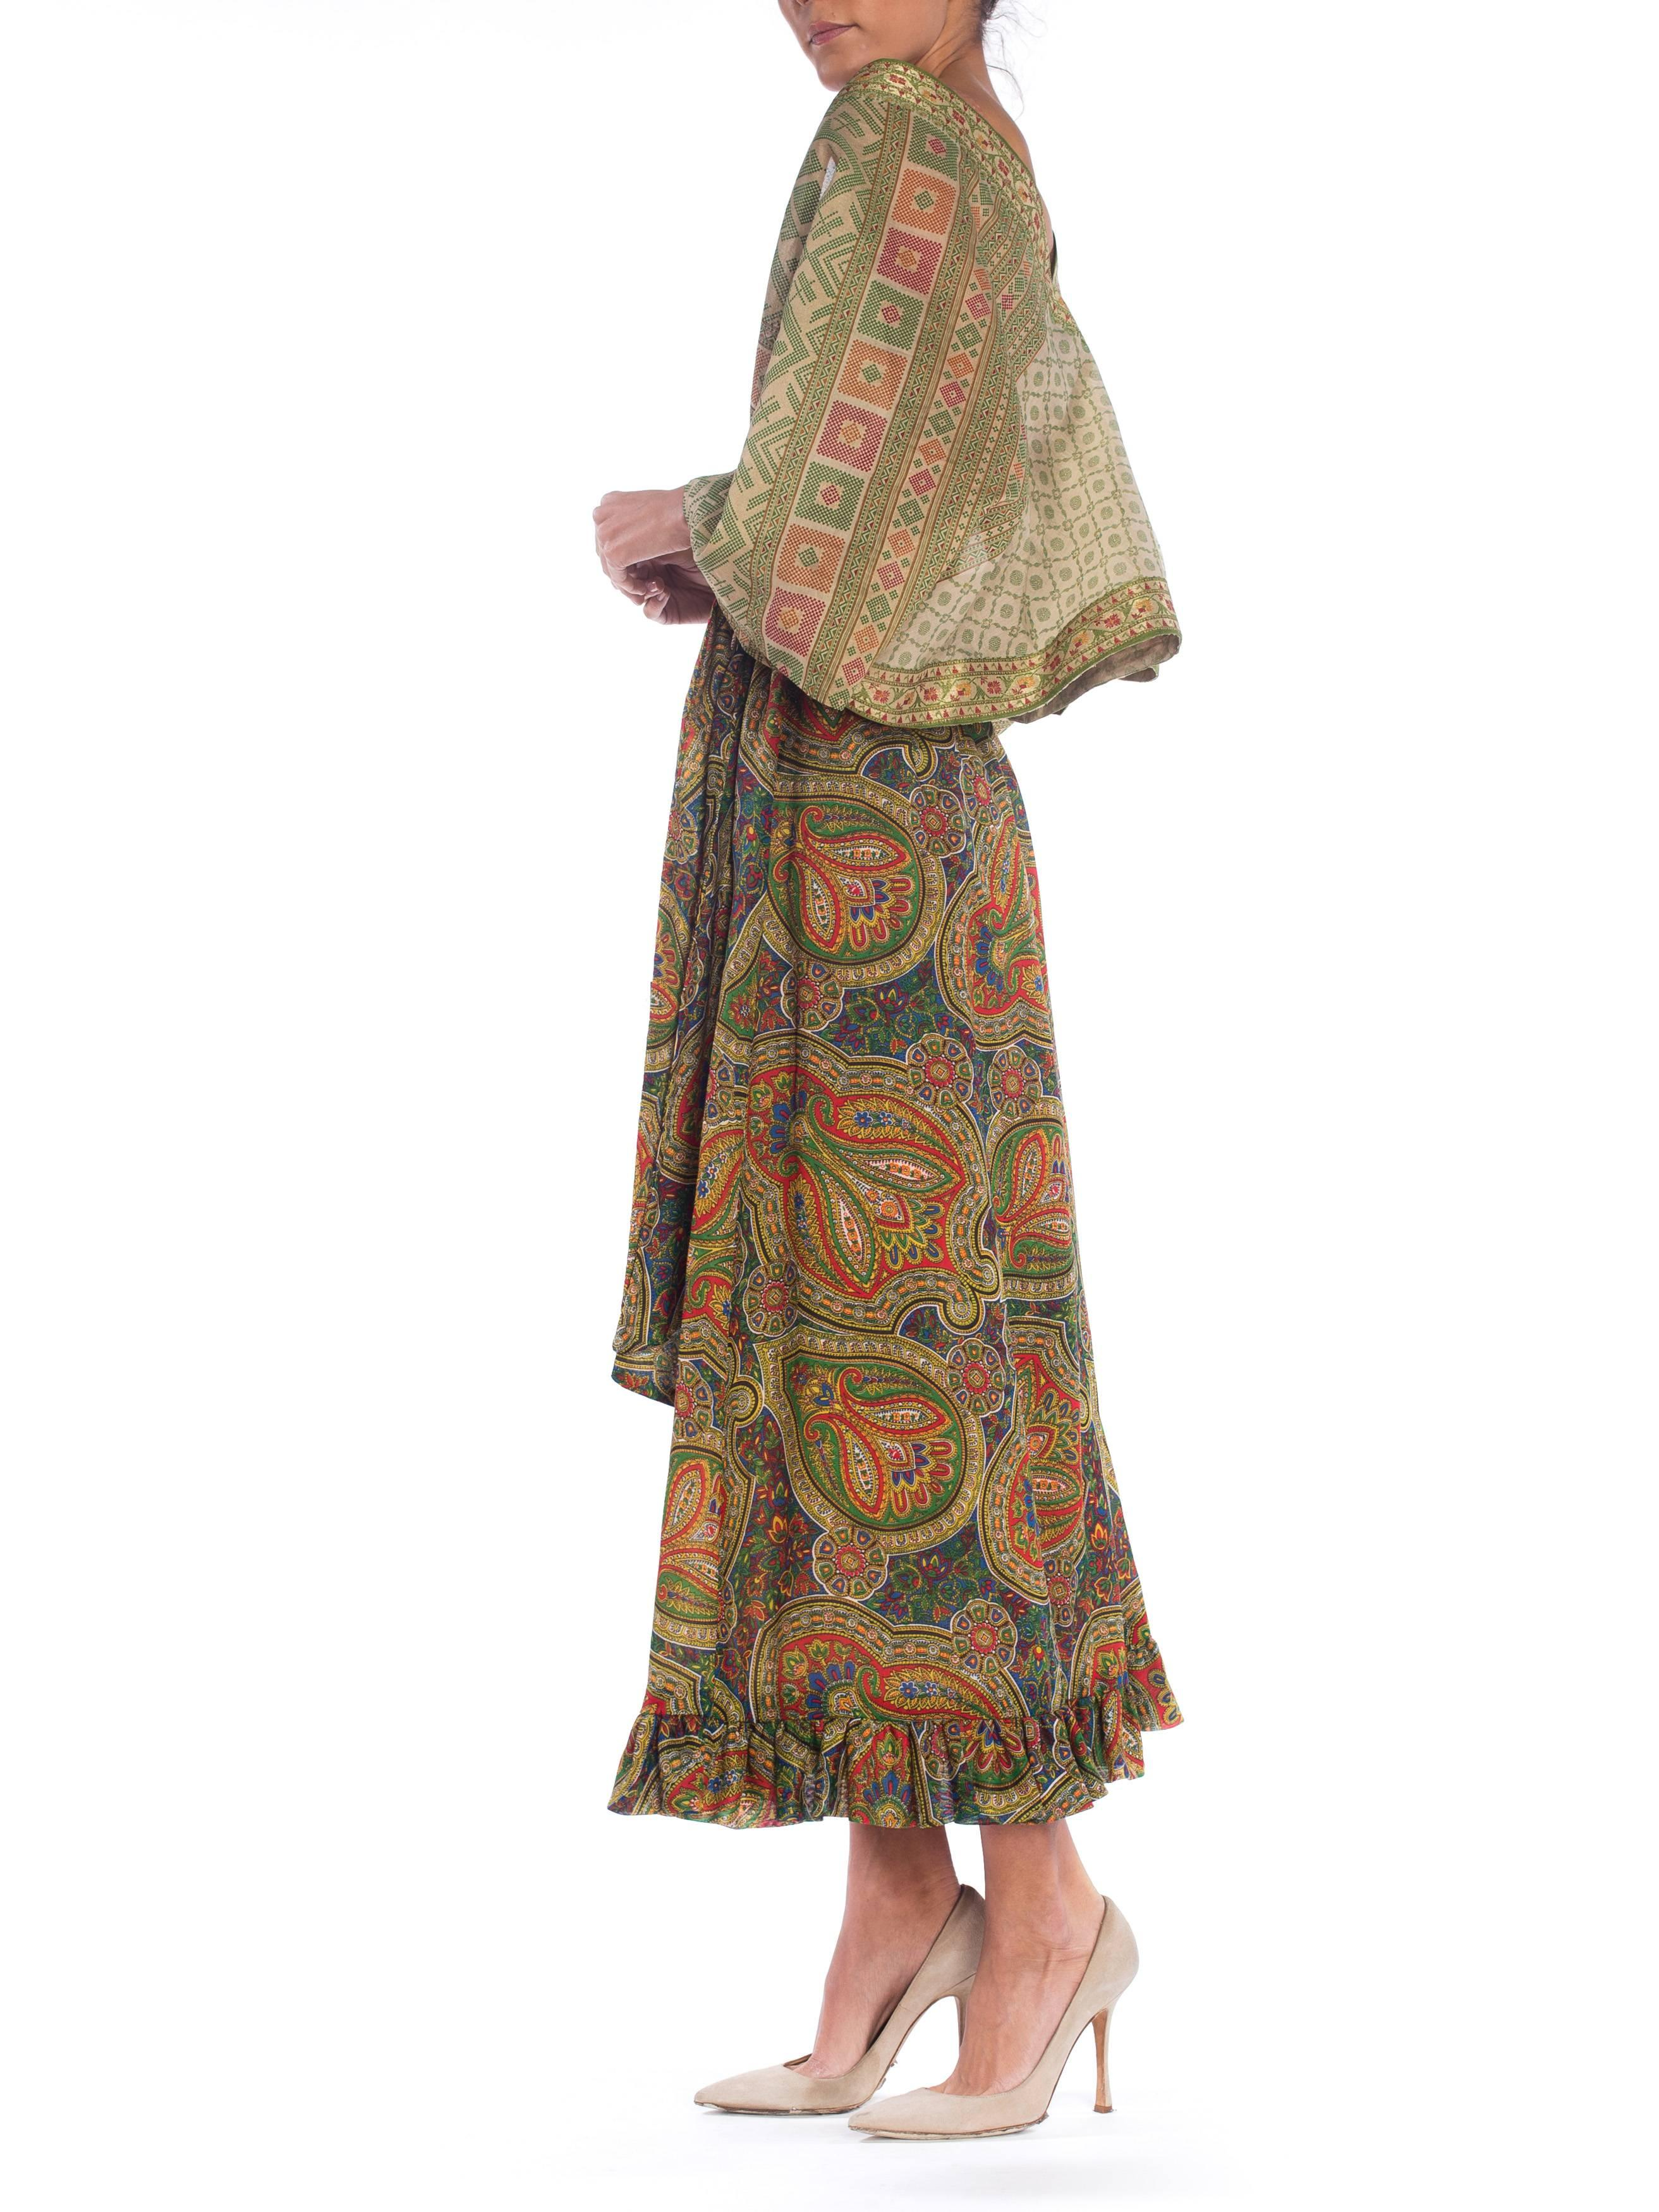 e721859453 Paisley Print Wrap Dress with Antique Indian Sari Top For Sale at 1stdibs